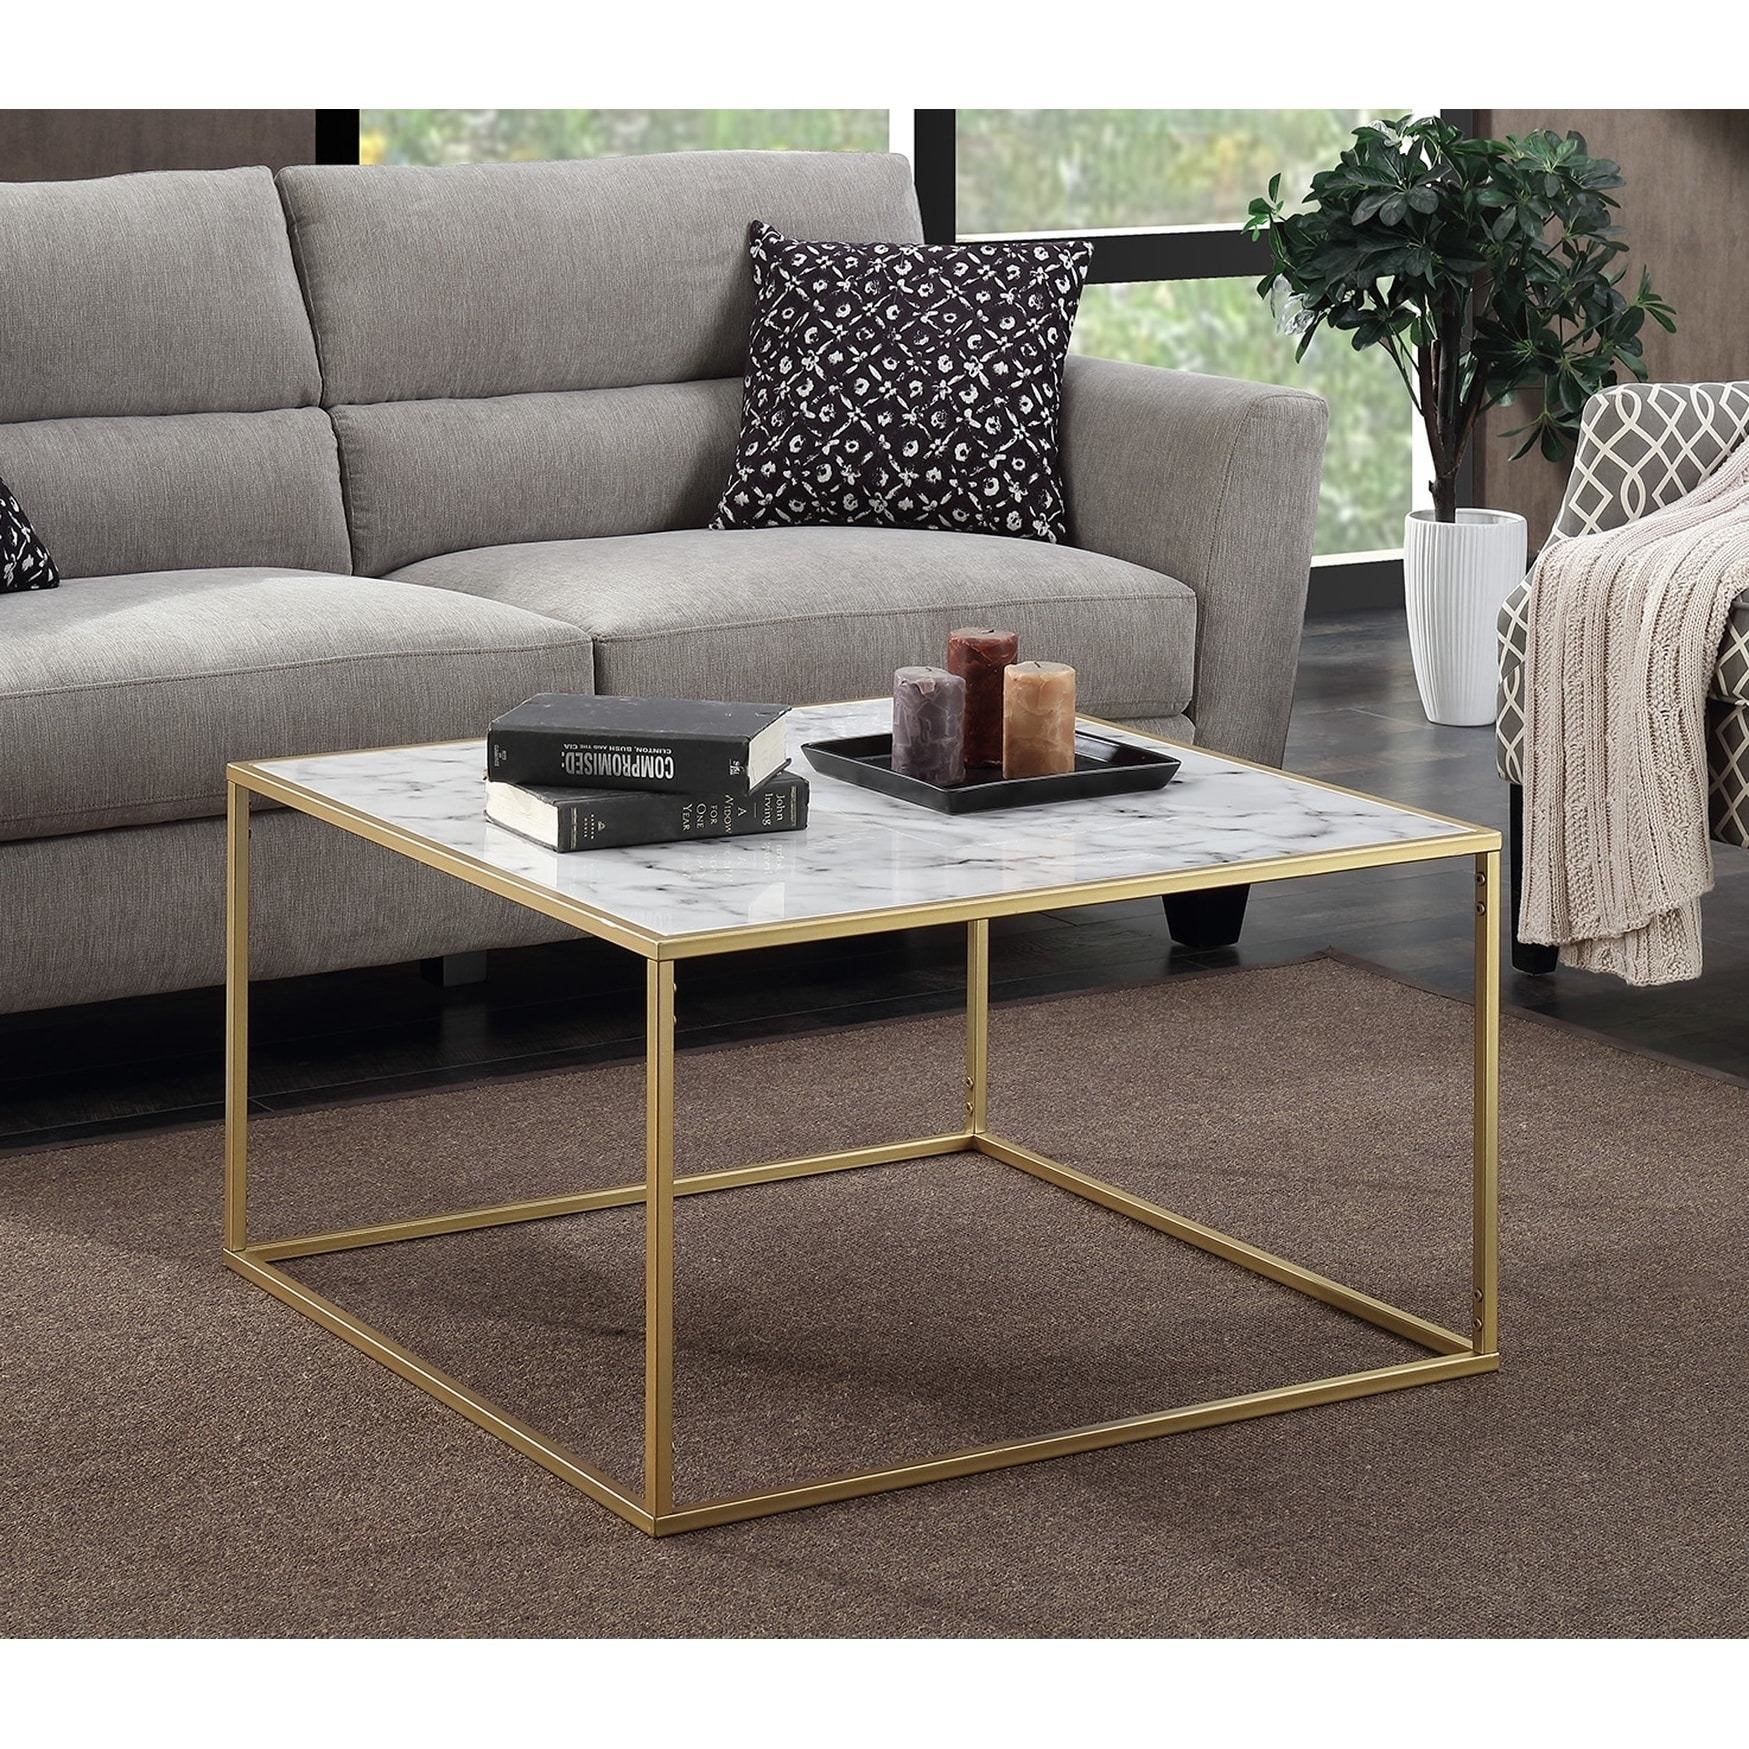 Marble And Silver Coffee Table.Silver Orchid Hasmik Square Faux Marble Coffee Table